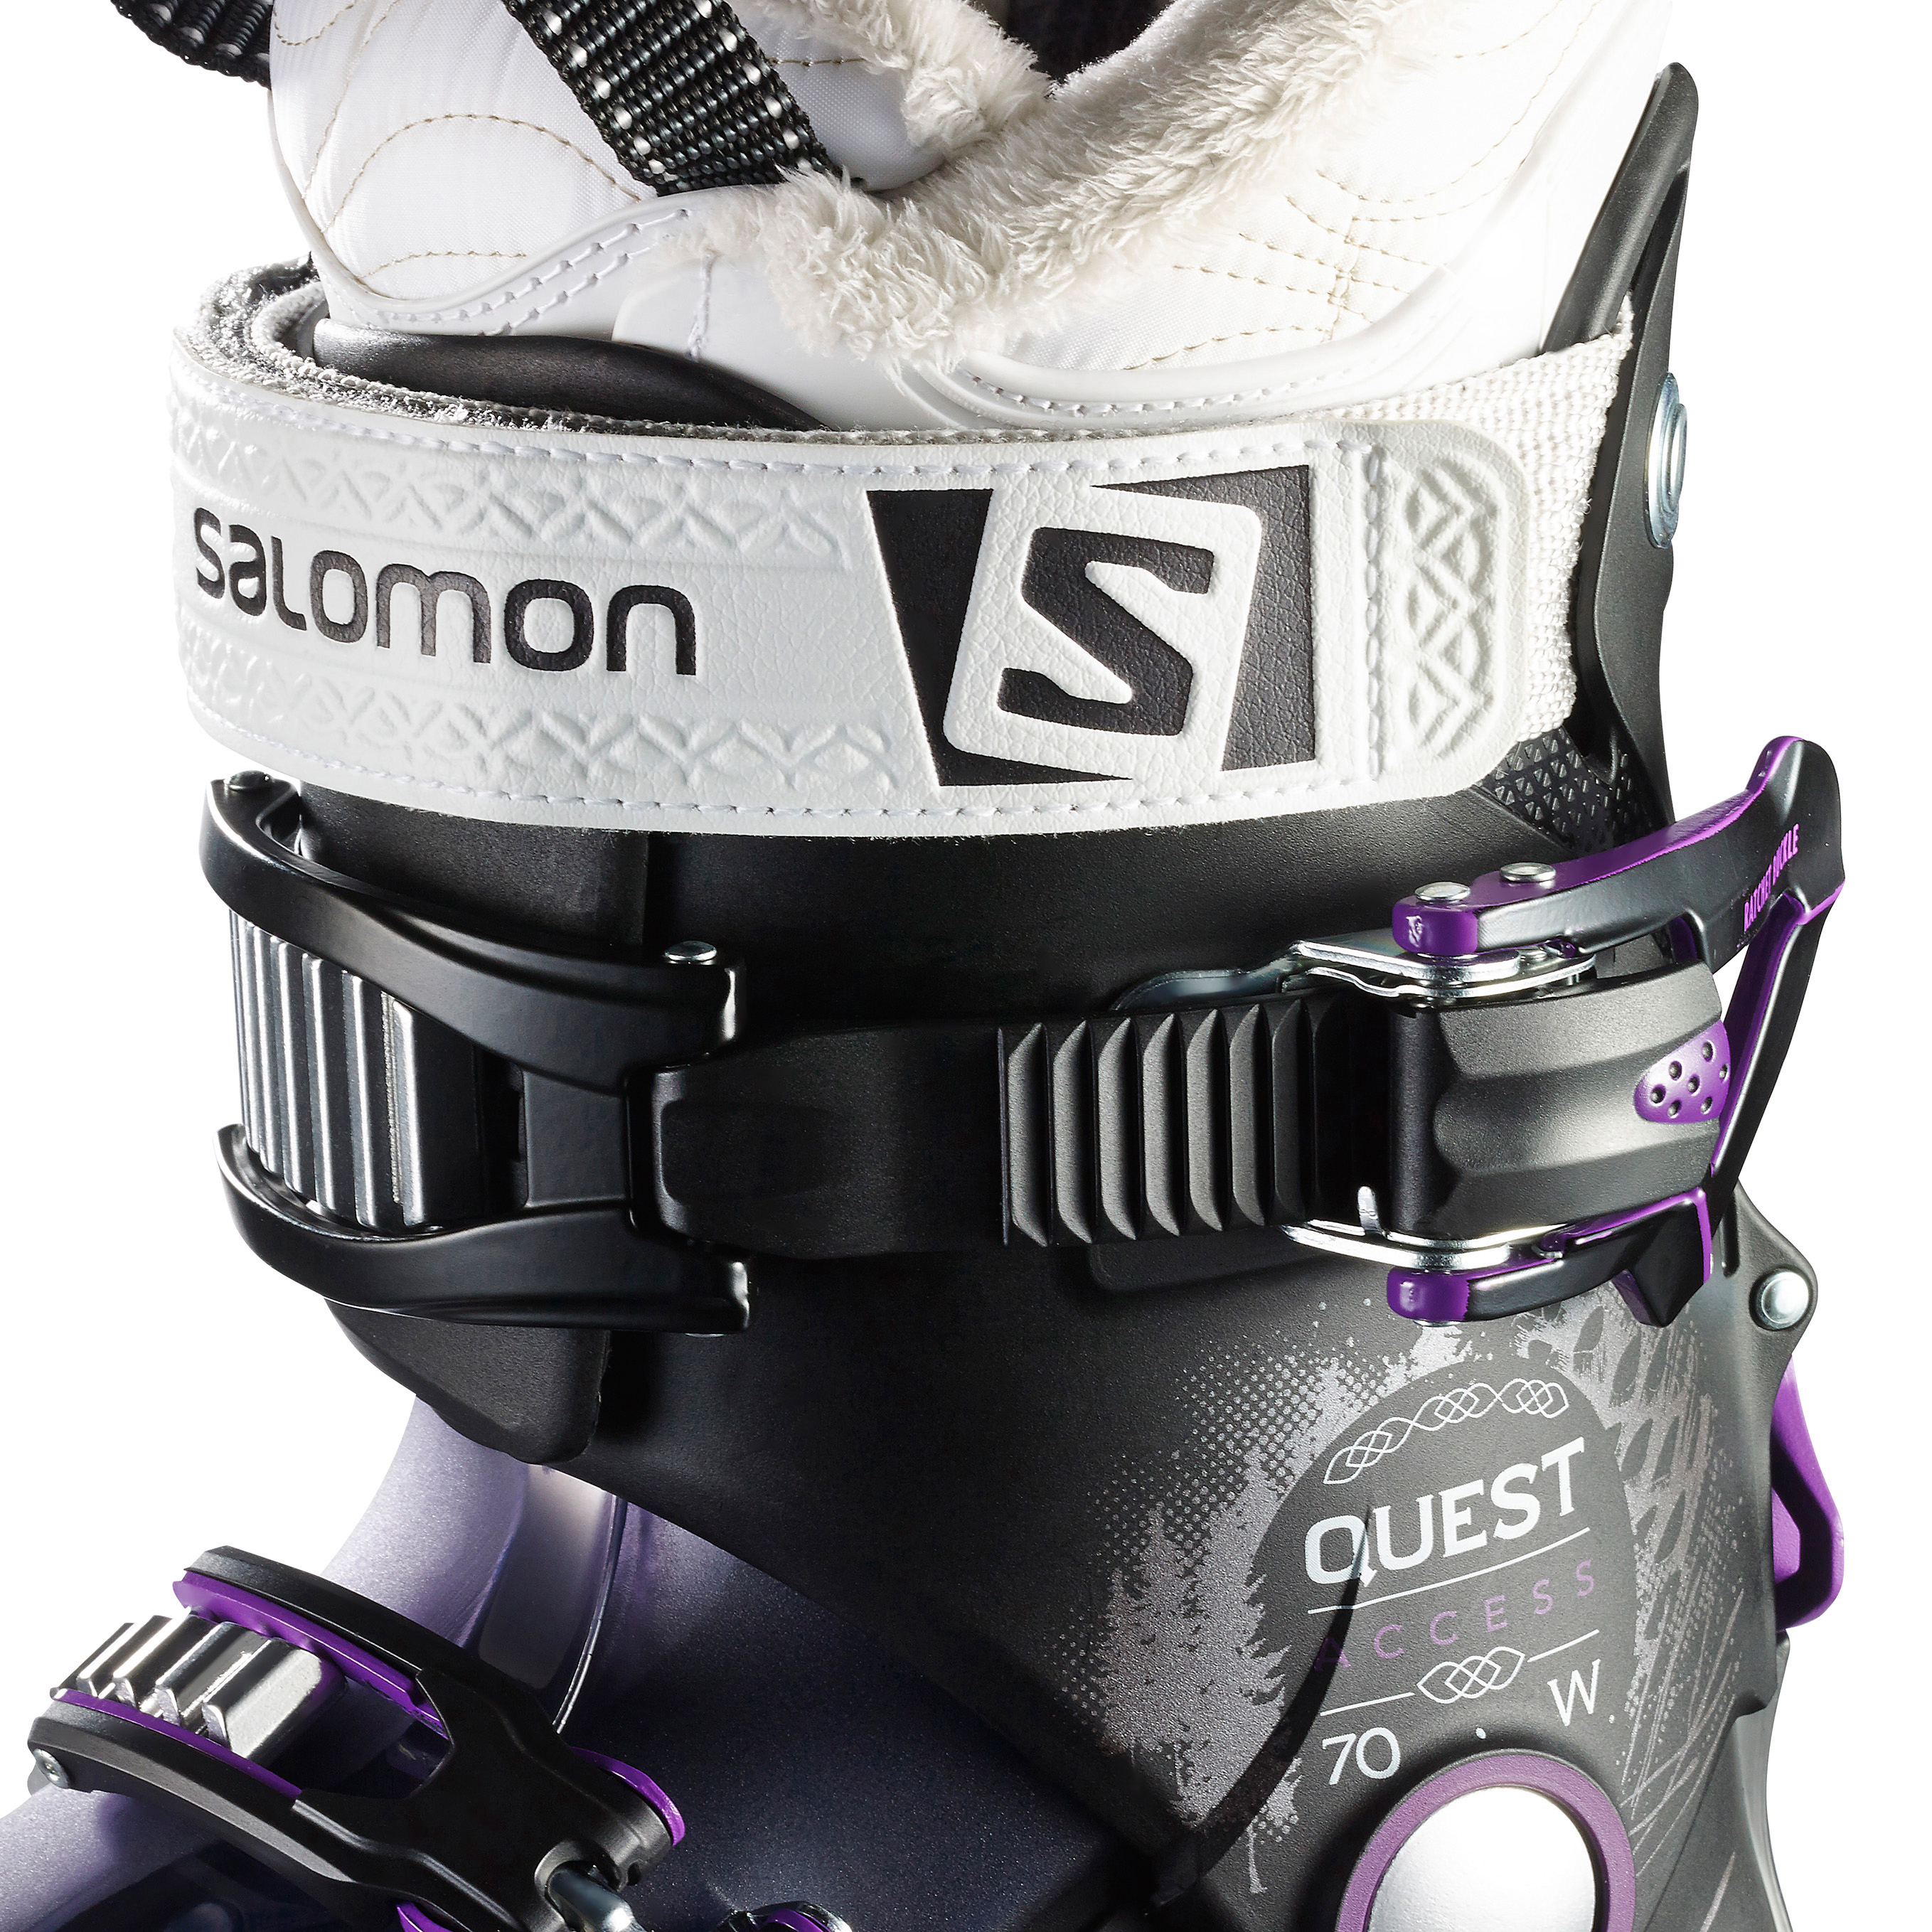 official photos best authentic look for Salomon Quest Access 70 Ski Boots - Women's | MEC